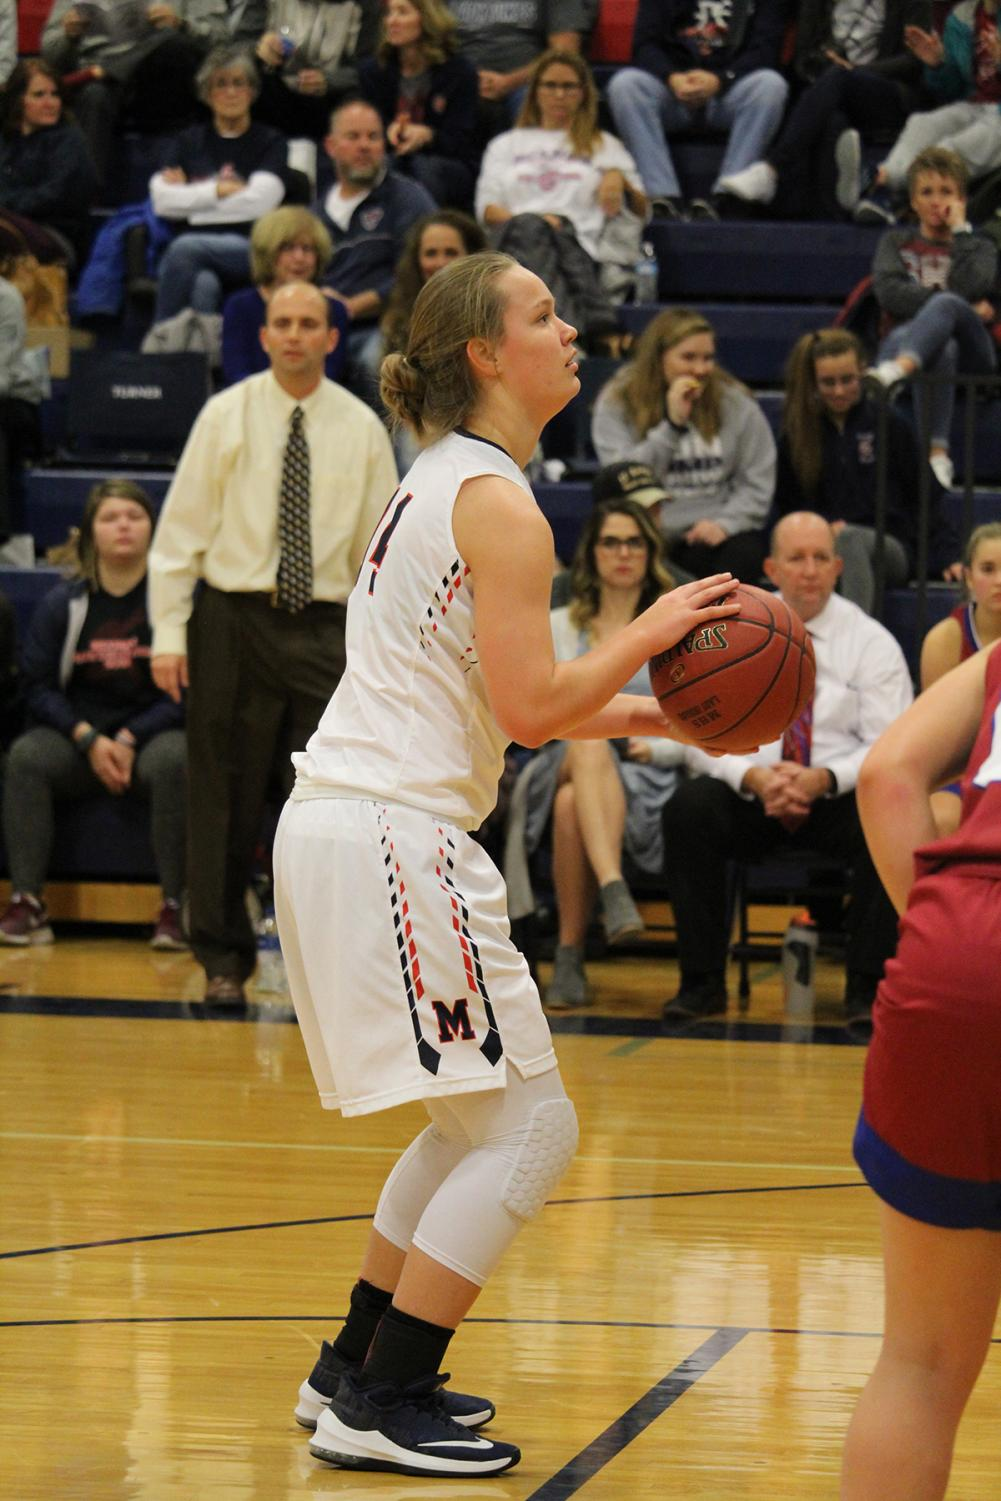 Sophomore Taylor Claussen prepares to shoot a freethrow during the basketball game on Friday 48-39. The home game against Seaman High School added the third win of the season.